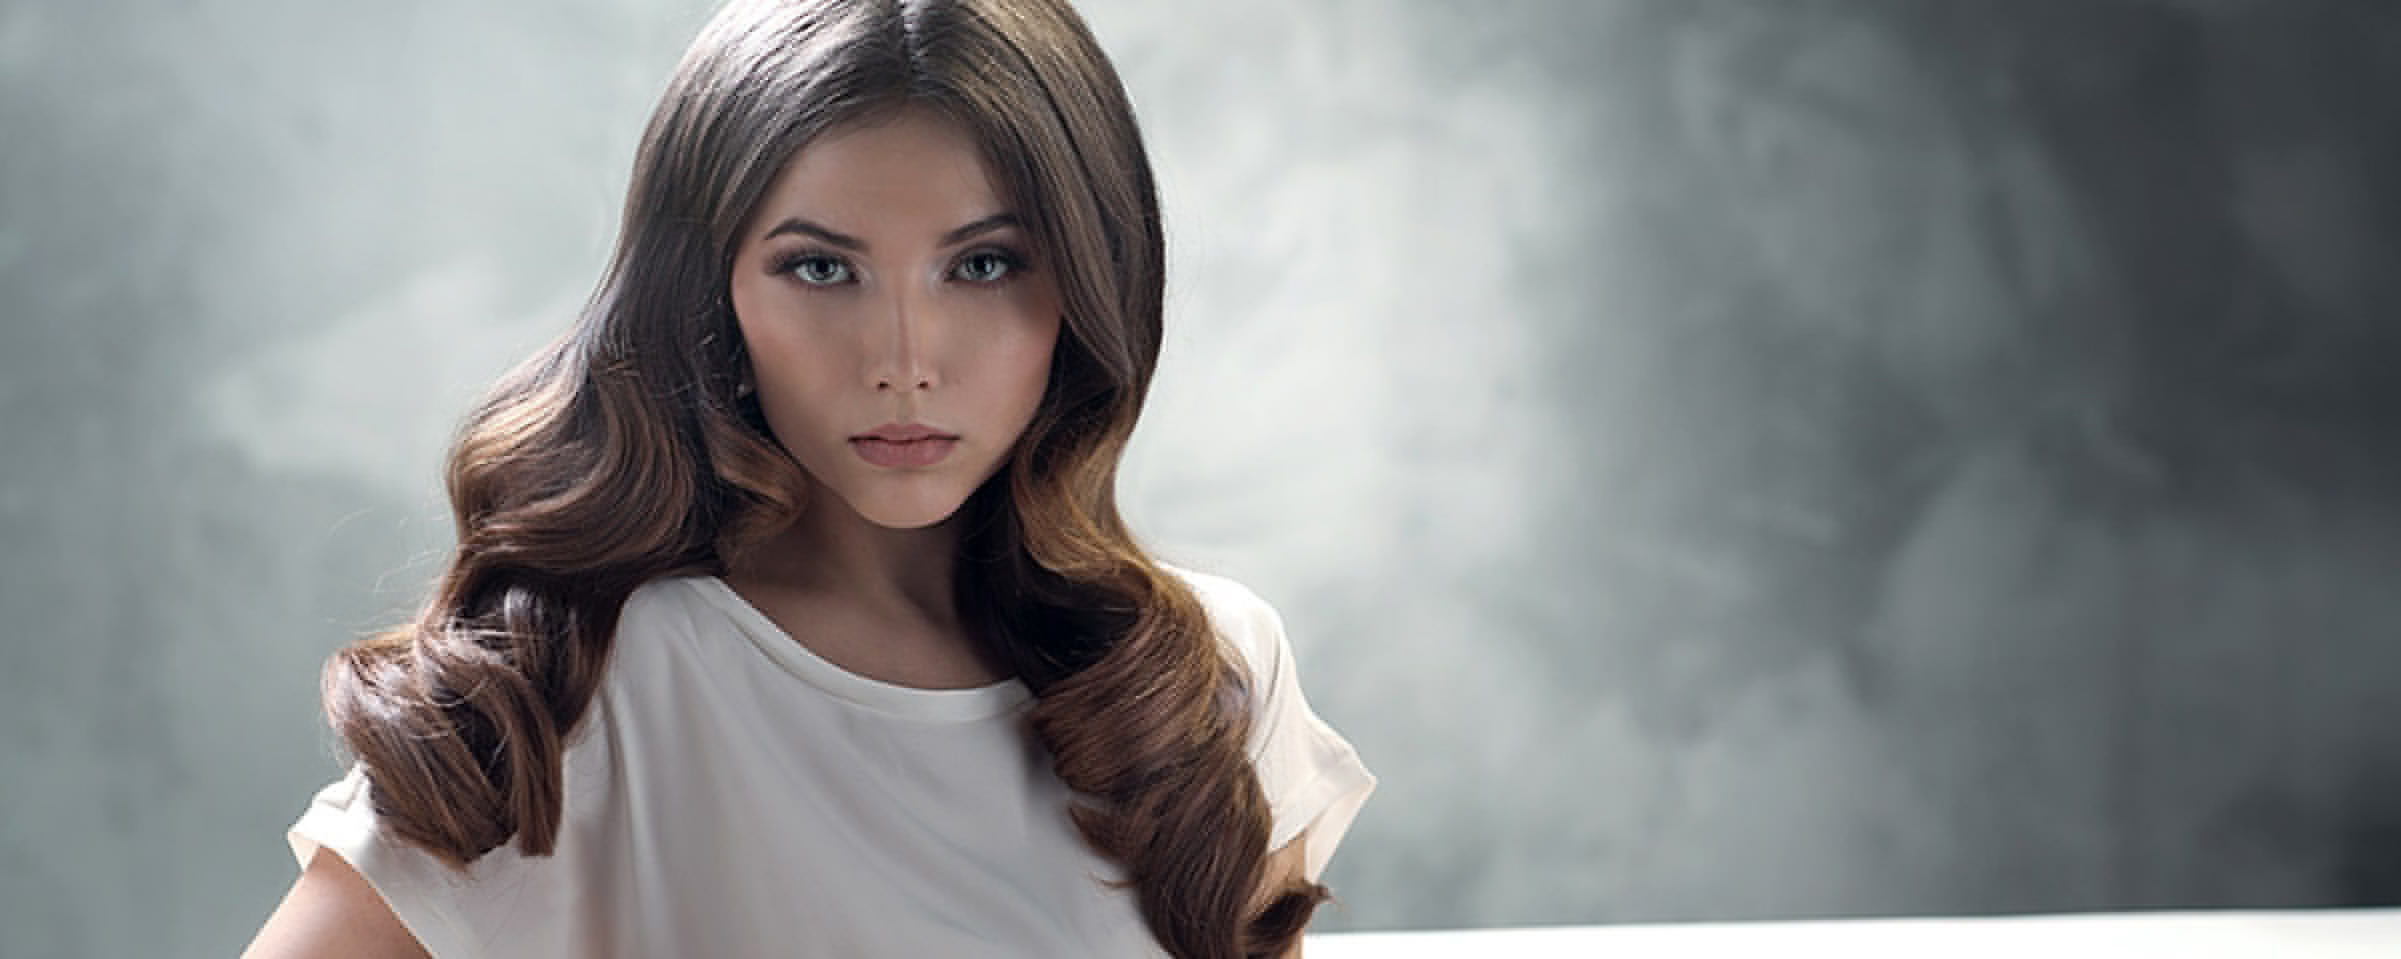 Salon Hair Best Hair Salons Indianapolis G Michael Salon Indy